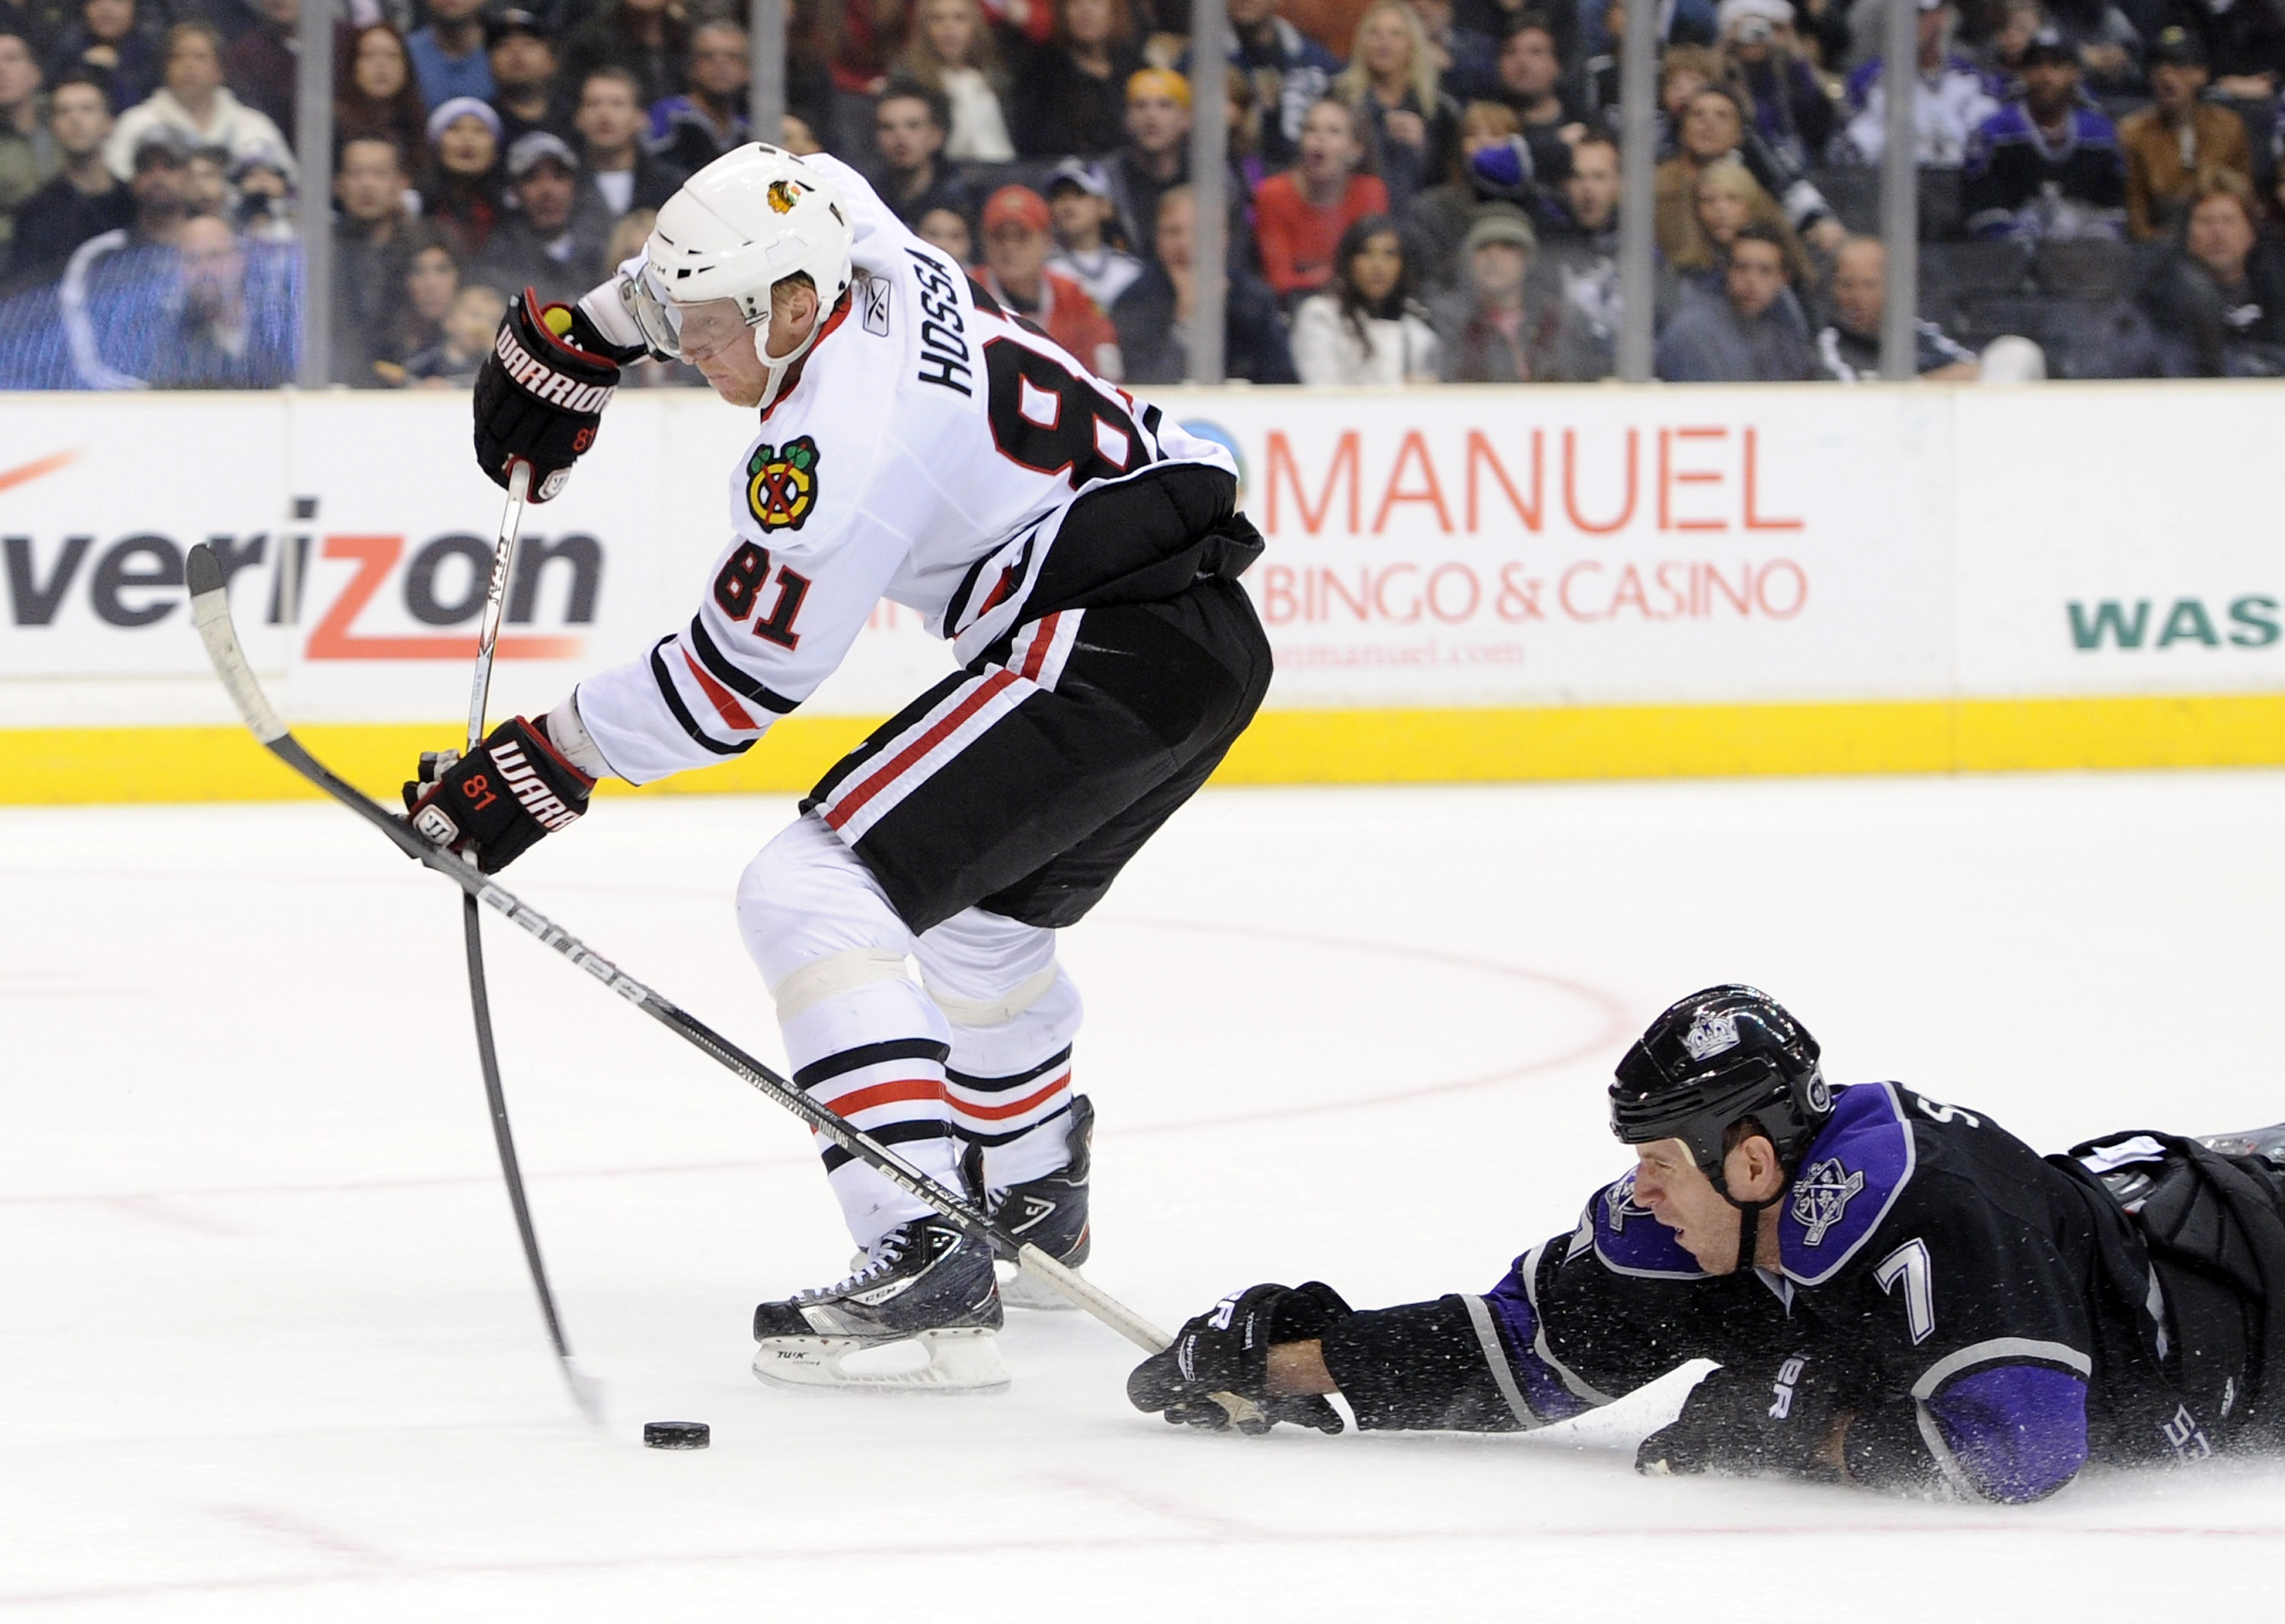 LOS ANGELES, CA - NOVEMBER 27:  Marian Hossa #81 of the Chicago Blackhawks has the puck knocked away on his breakaway by a diving Rob Scuderi #7 of the Los Angeles Kings during the first period at Staples Center on November 27, 2010 in Los Angeles, Califo